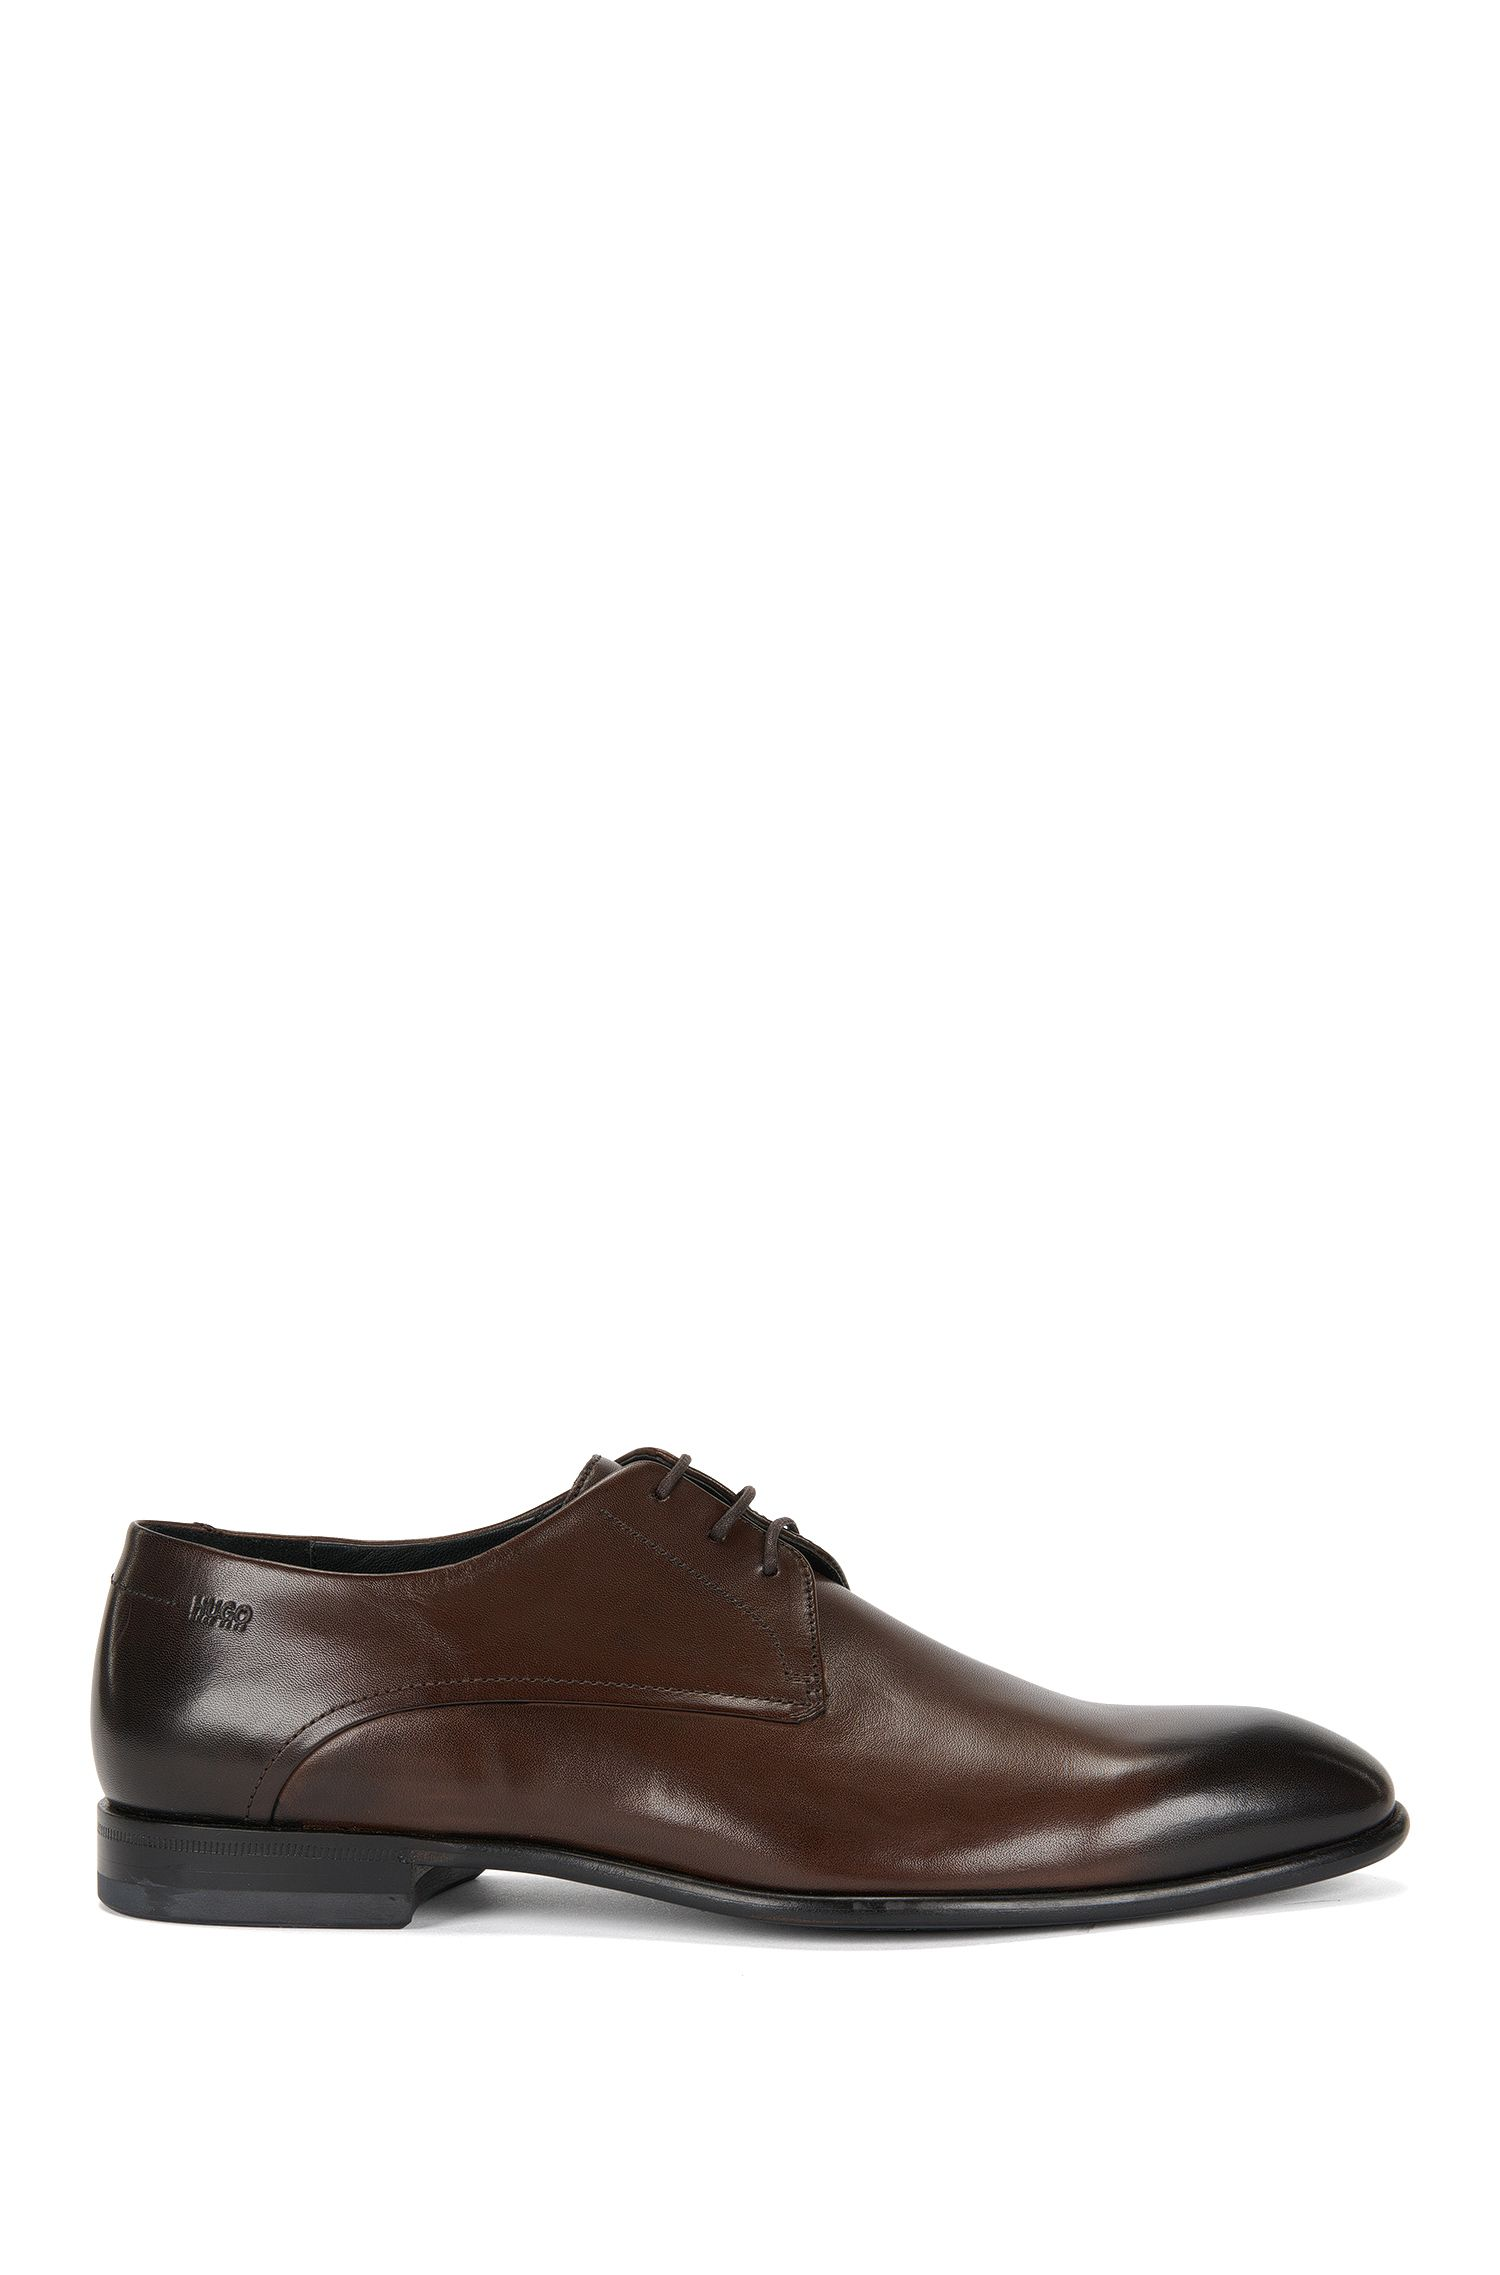 Leather Derby shoes with ombre uppers